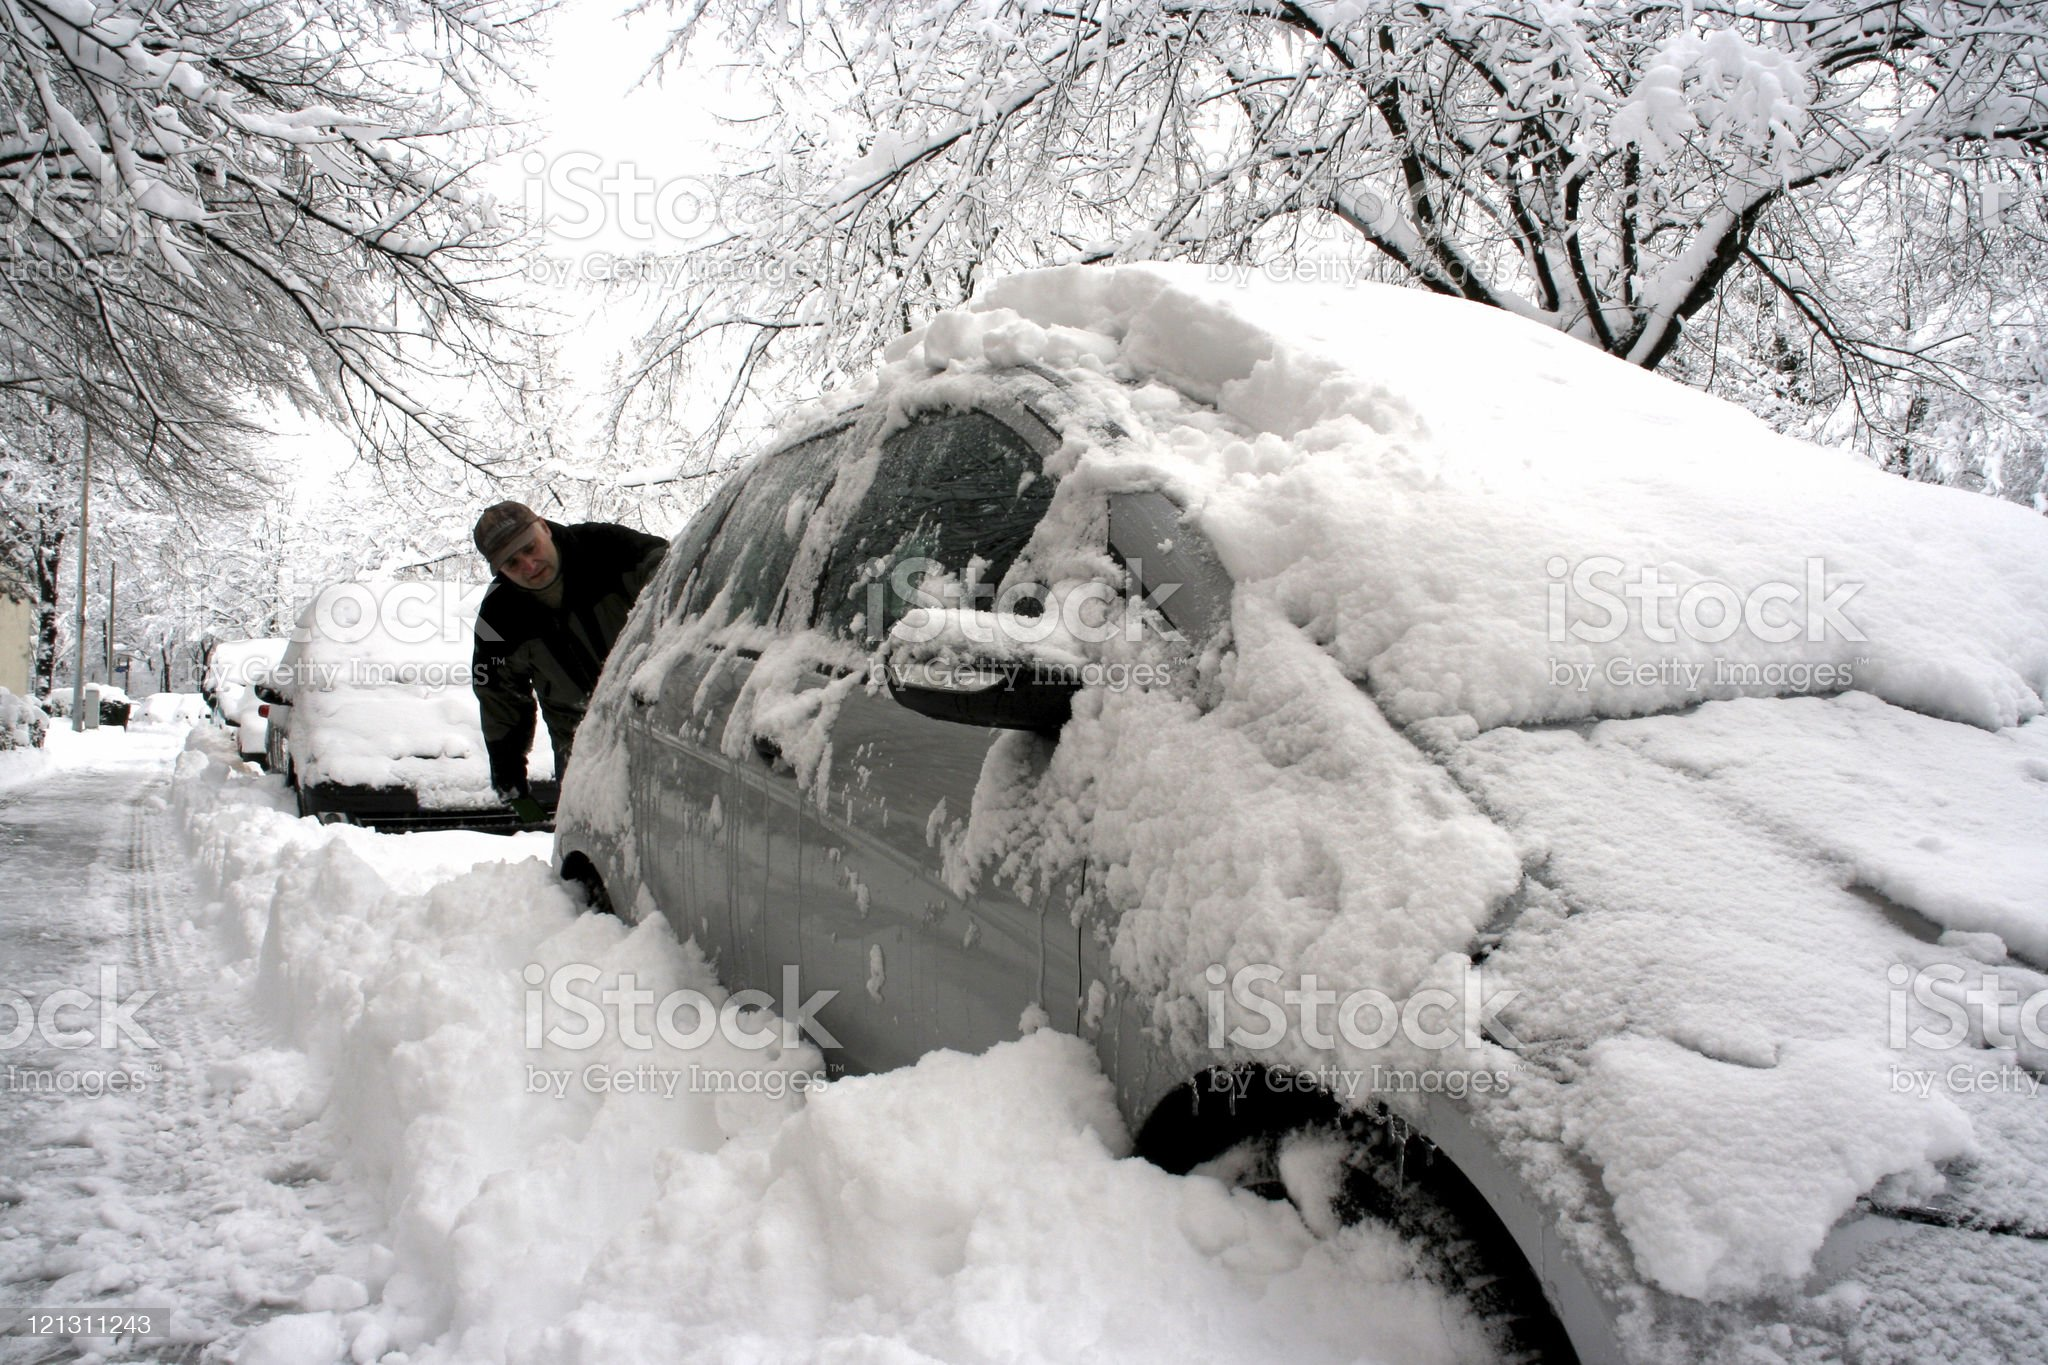 Man clearing off car after big snowfall royalty-free stock photo